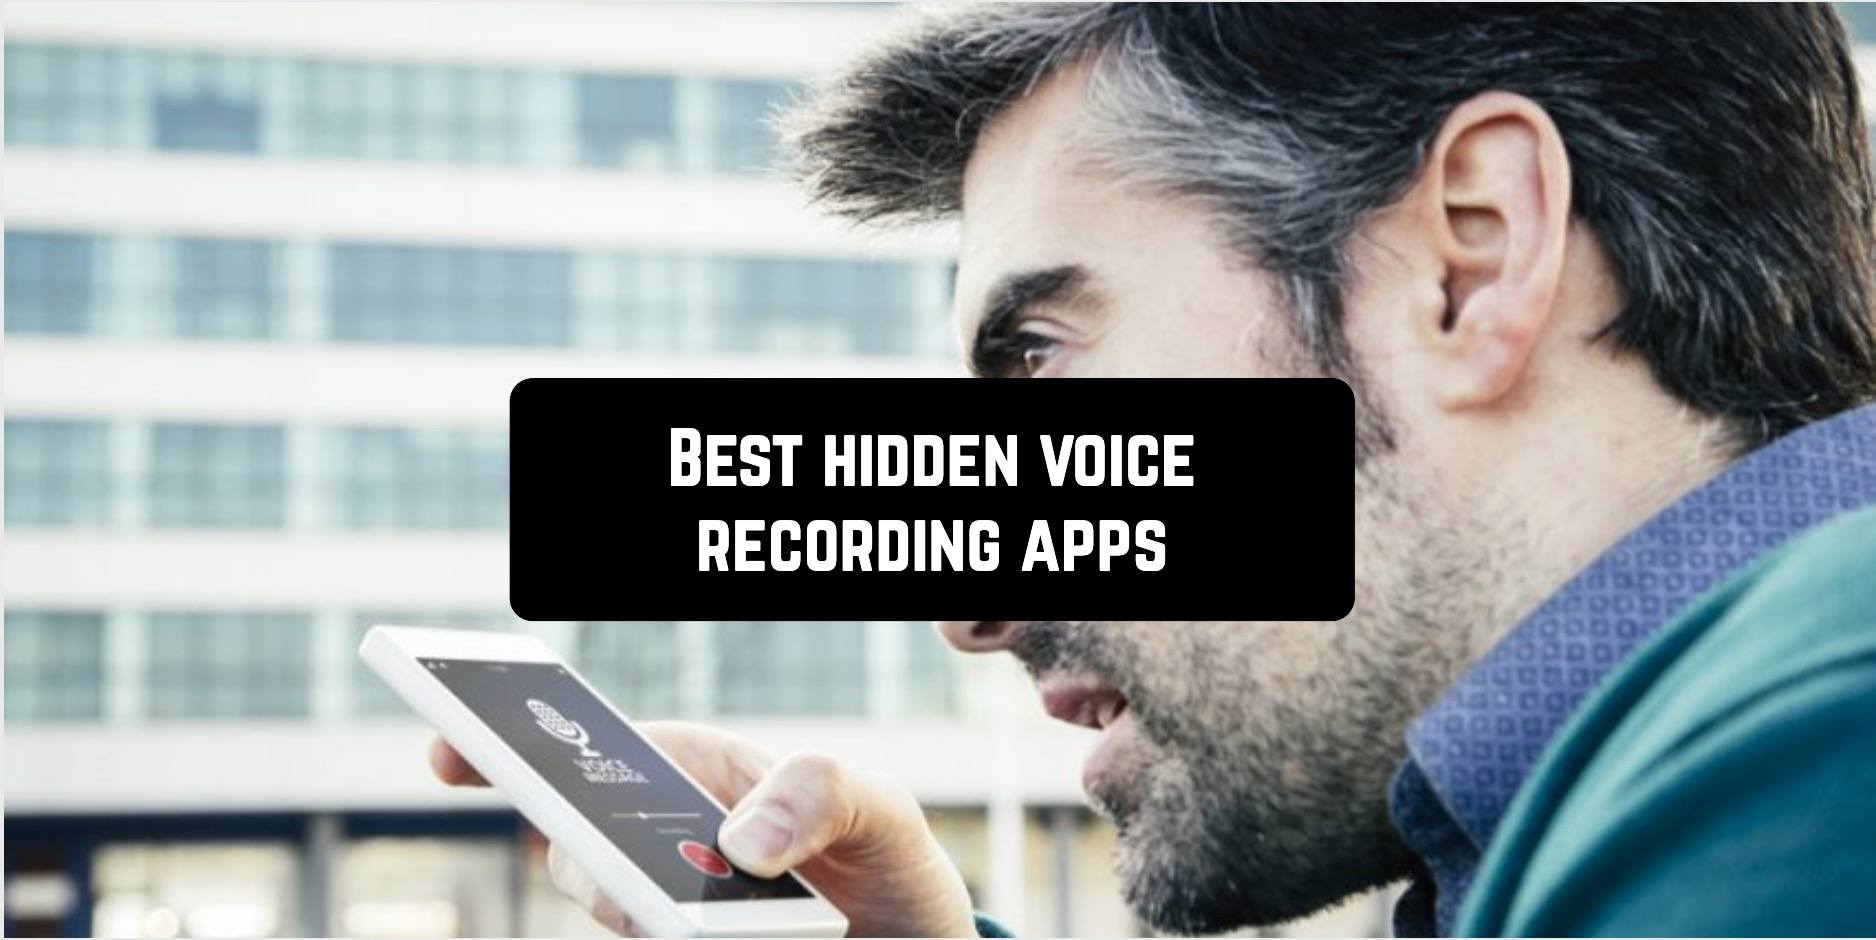 Best hidden voice recording apps